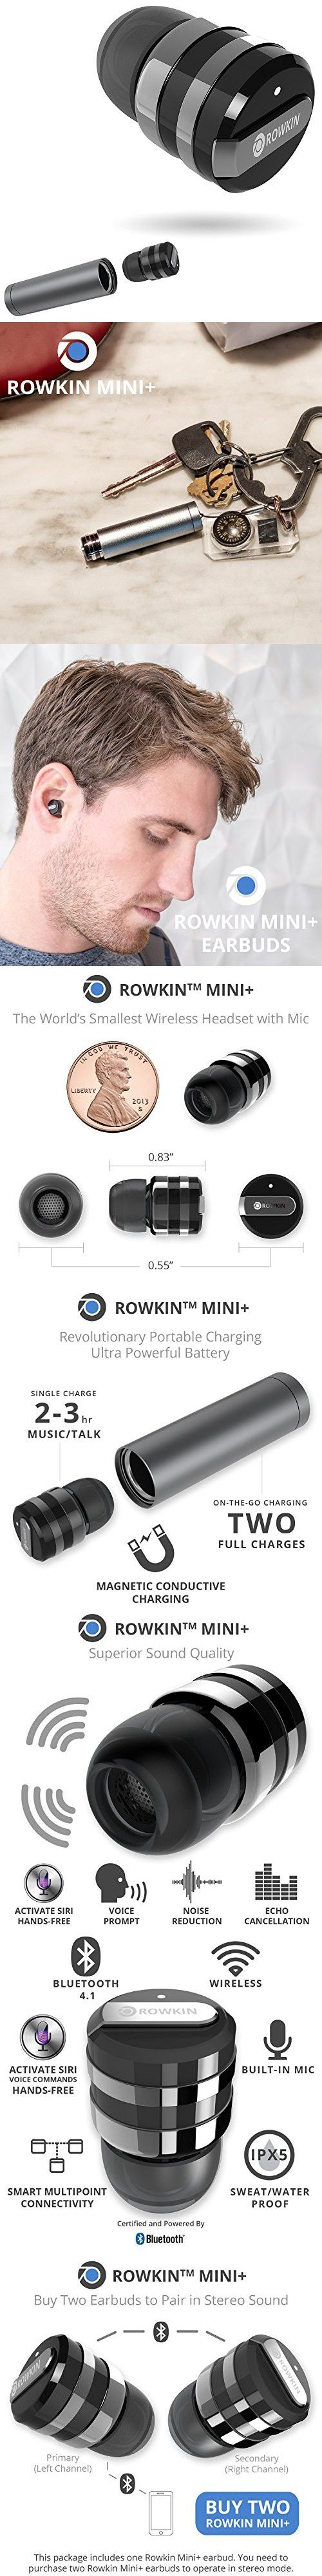 Rowkin Mini Plus+ Wireless Headphone, Bluetooth 4.1 Earbud with Mic. Smallest Cordless Hands-free Stereo Earphone Headset with Portable Charger & Noise Reduction (BUY 2 for Stereo Sound) - Space Gray